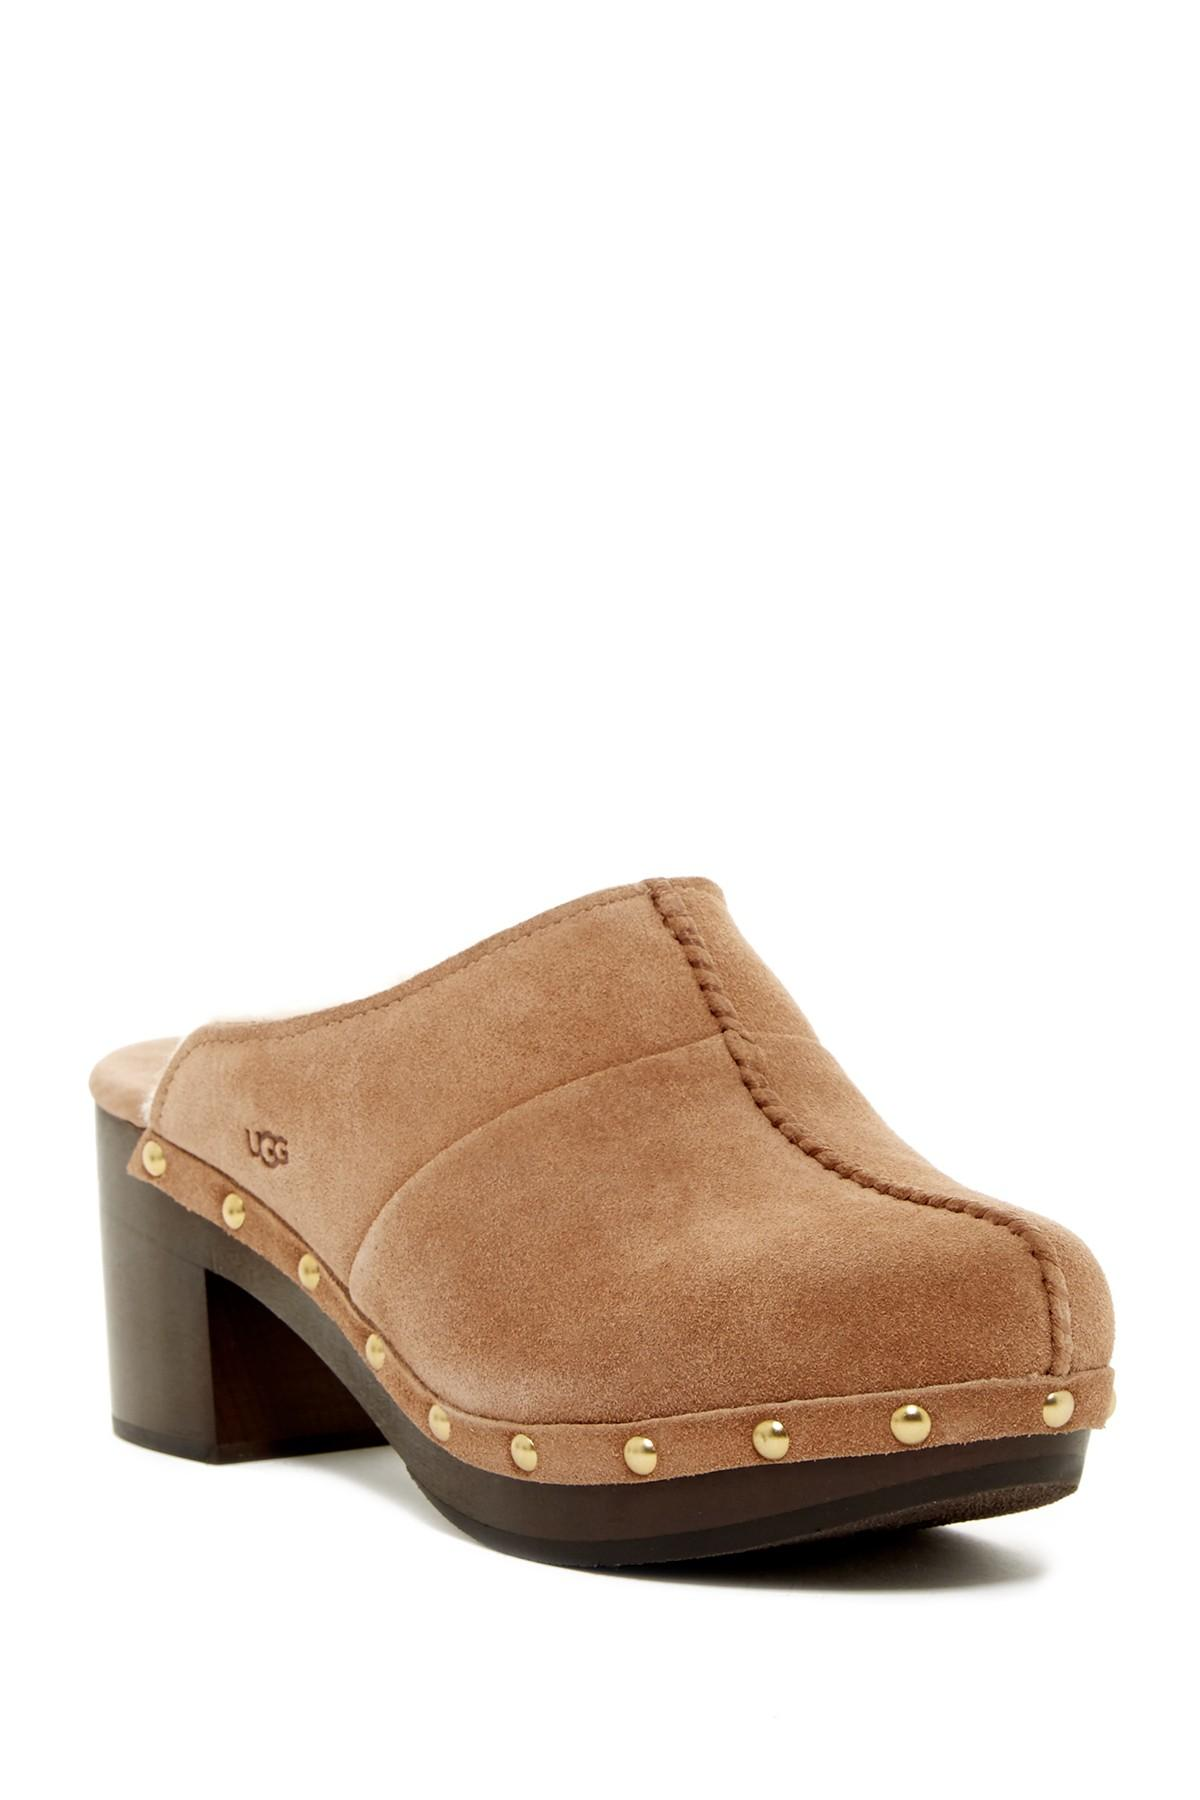 Nordstrom Ugg Australia up to 50% Off + Free Shipping $+ Nordstrom takes up to 50% off select Ugg Australia styles, bringing the prices down to the lowest we've seen for these boots and slippers. Enjoy free shipping on orders $+ with coupon code: HOLIDAY09 (Exp 12/20).